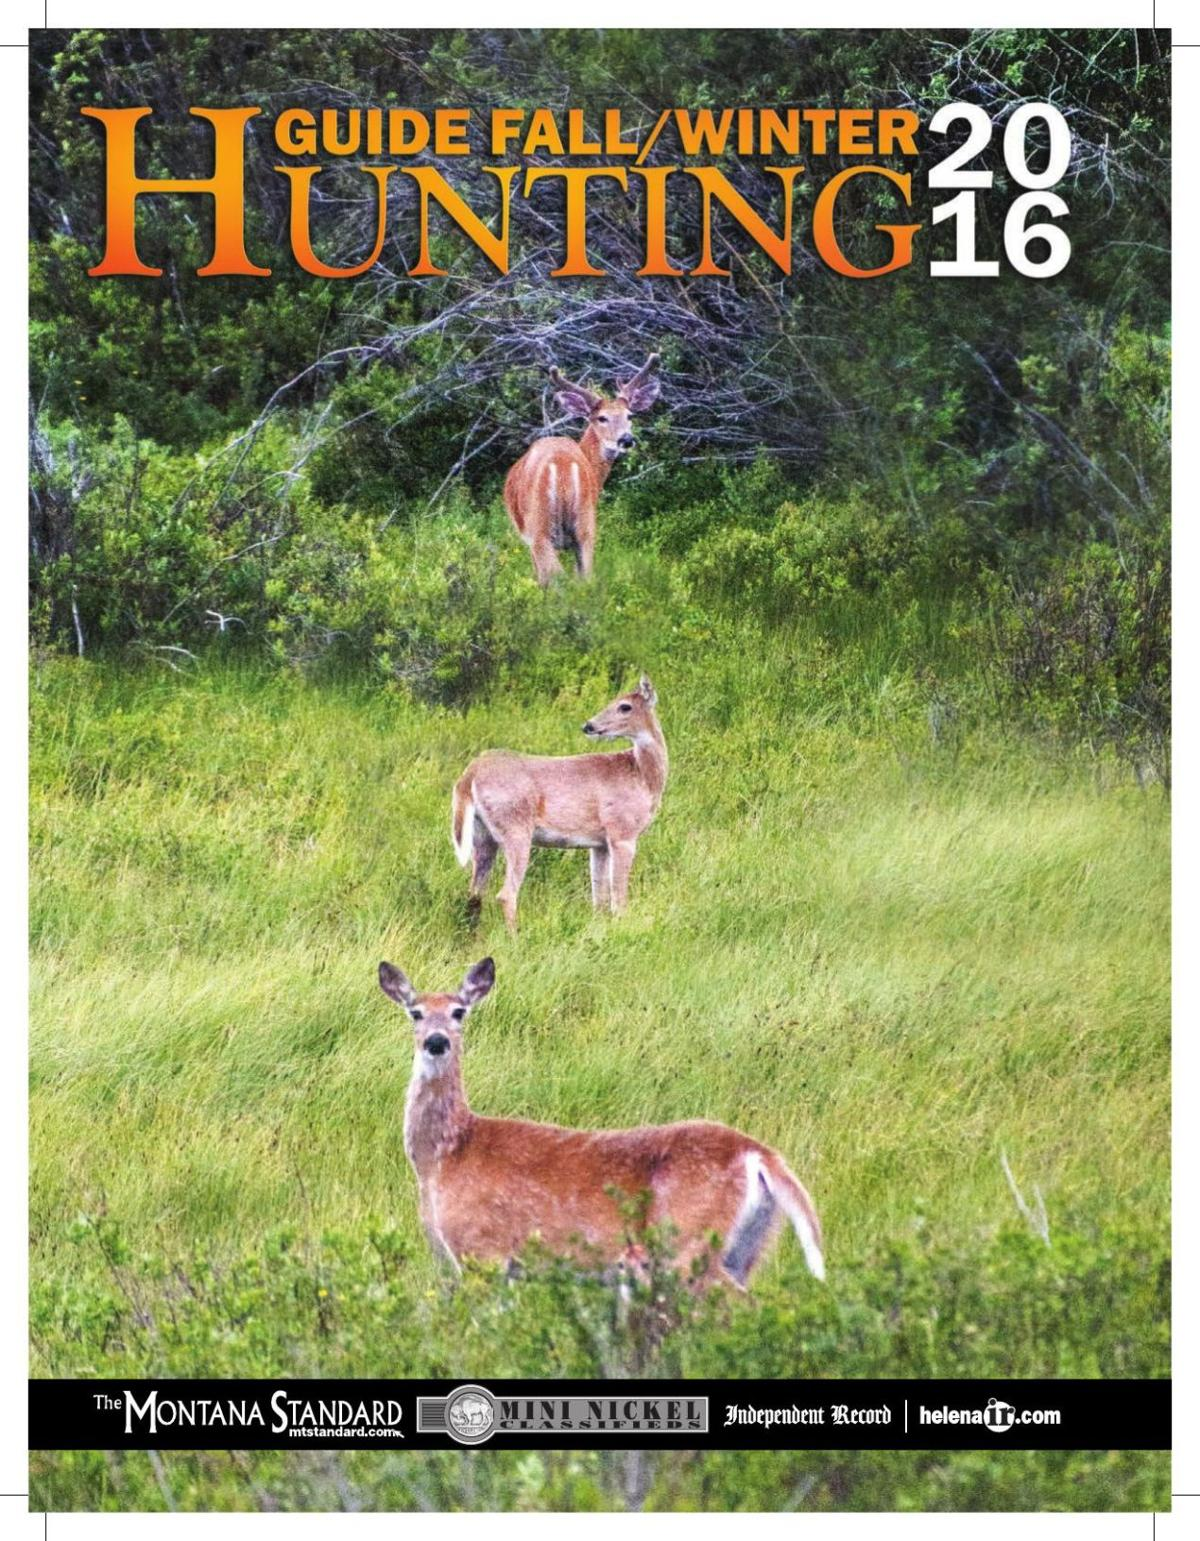 Fall/Winter Hunting Guide 2016